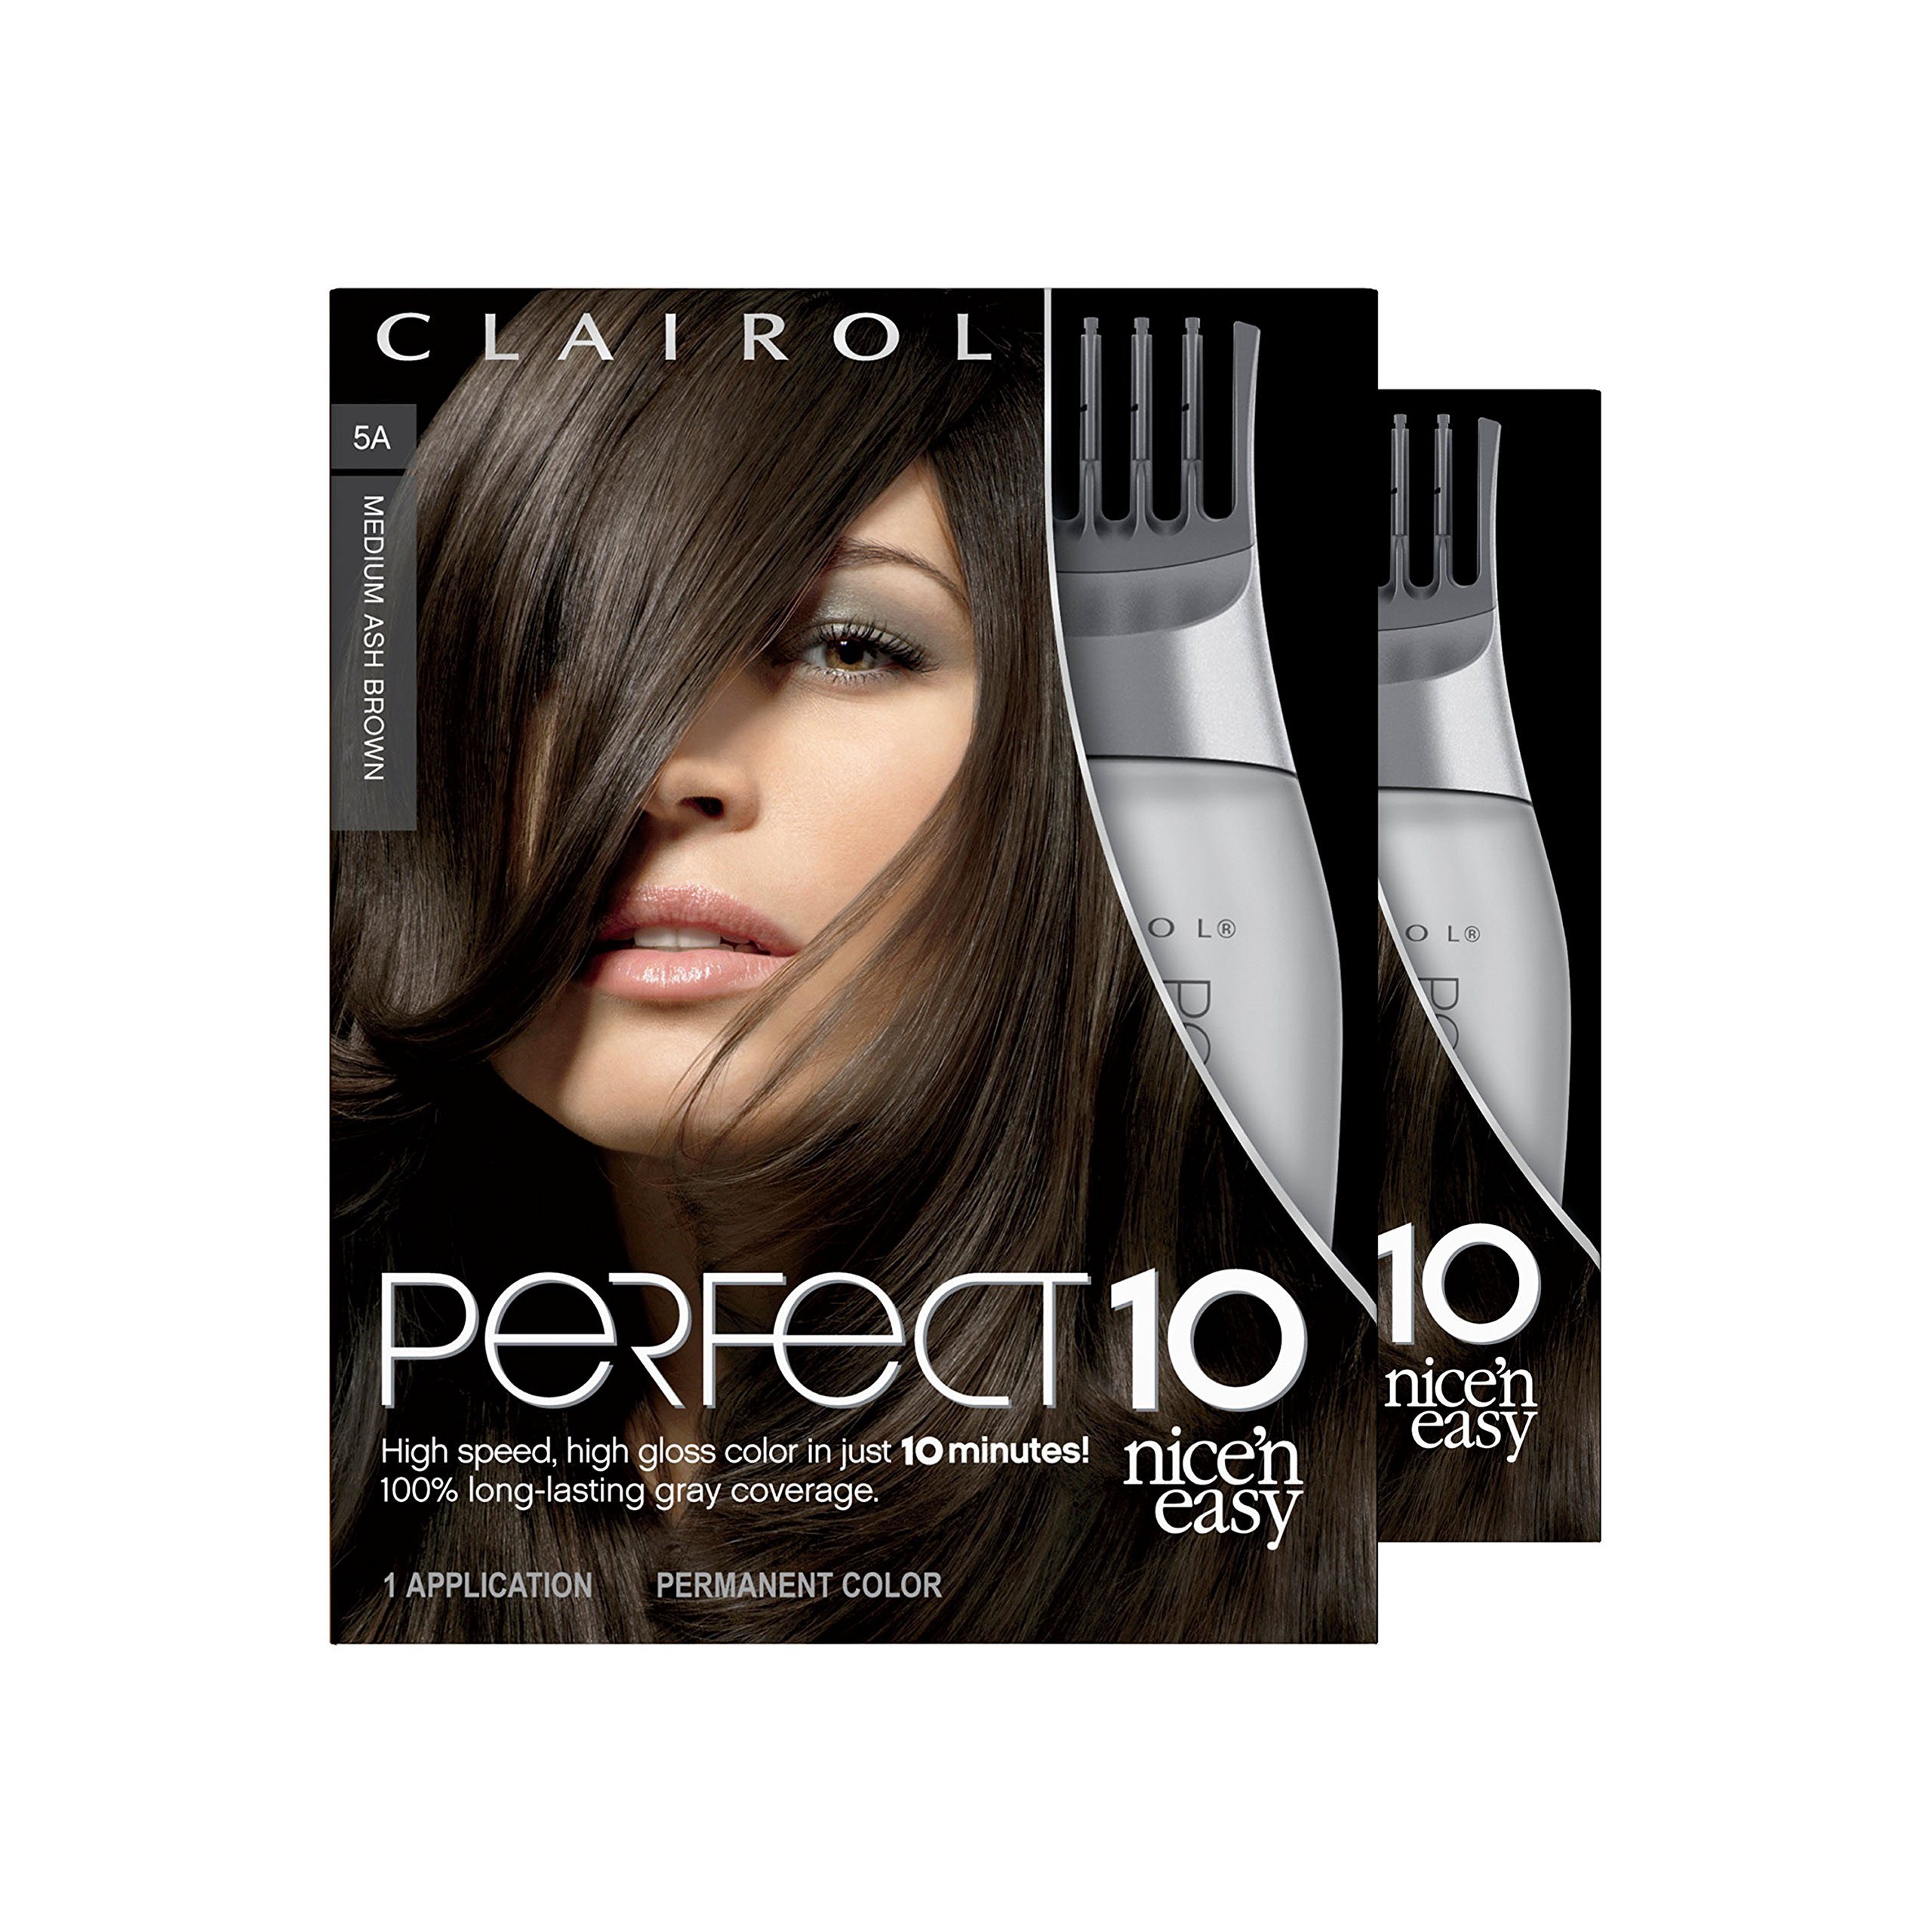 Clairol Perfect 10 By Nice 'N Easy Hair Color Kit (Pack of 2), 005A Medium Ash Brown, Includes Comb Applicator, Lasts Up To 60 Days by Clairol (Image #12)